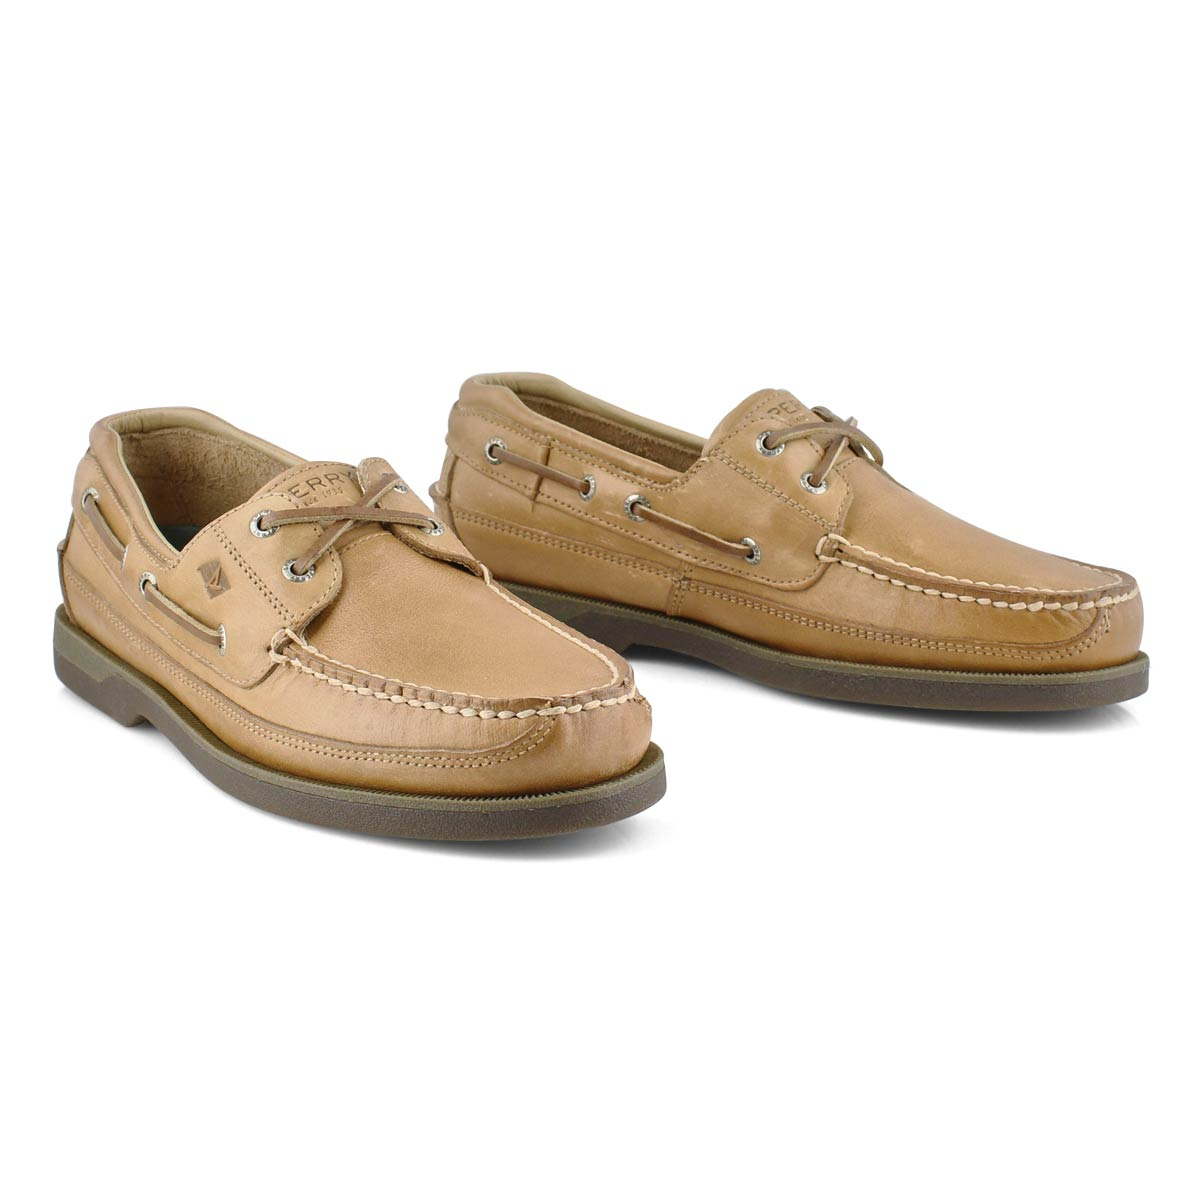 Mns Mako 2-eye Canoe Moc oak boat shoe